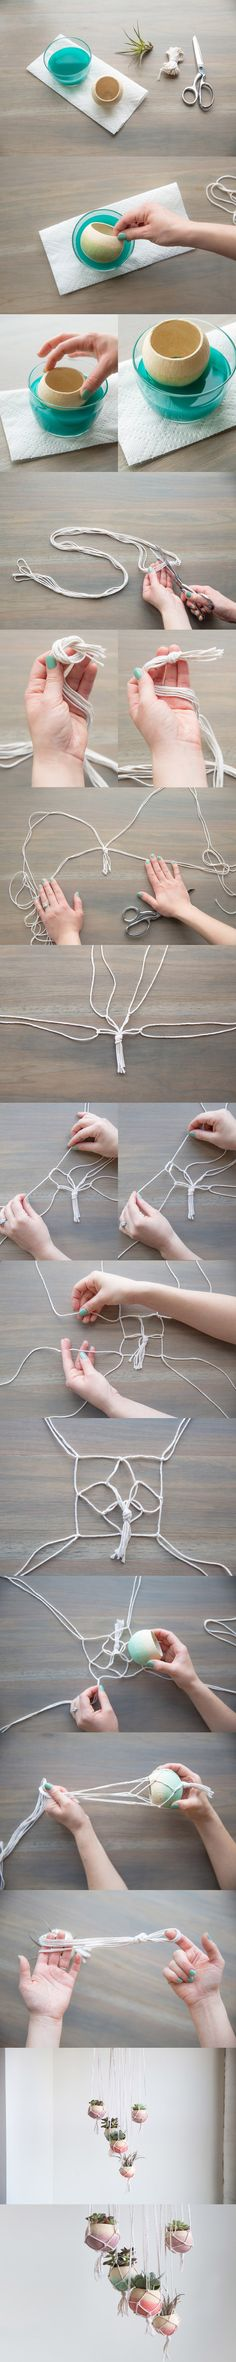 DIY - Plantes suspendues